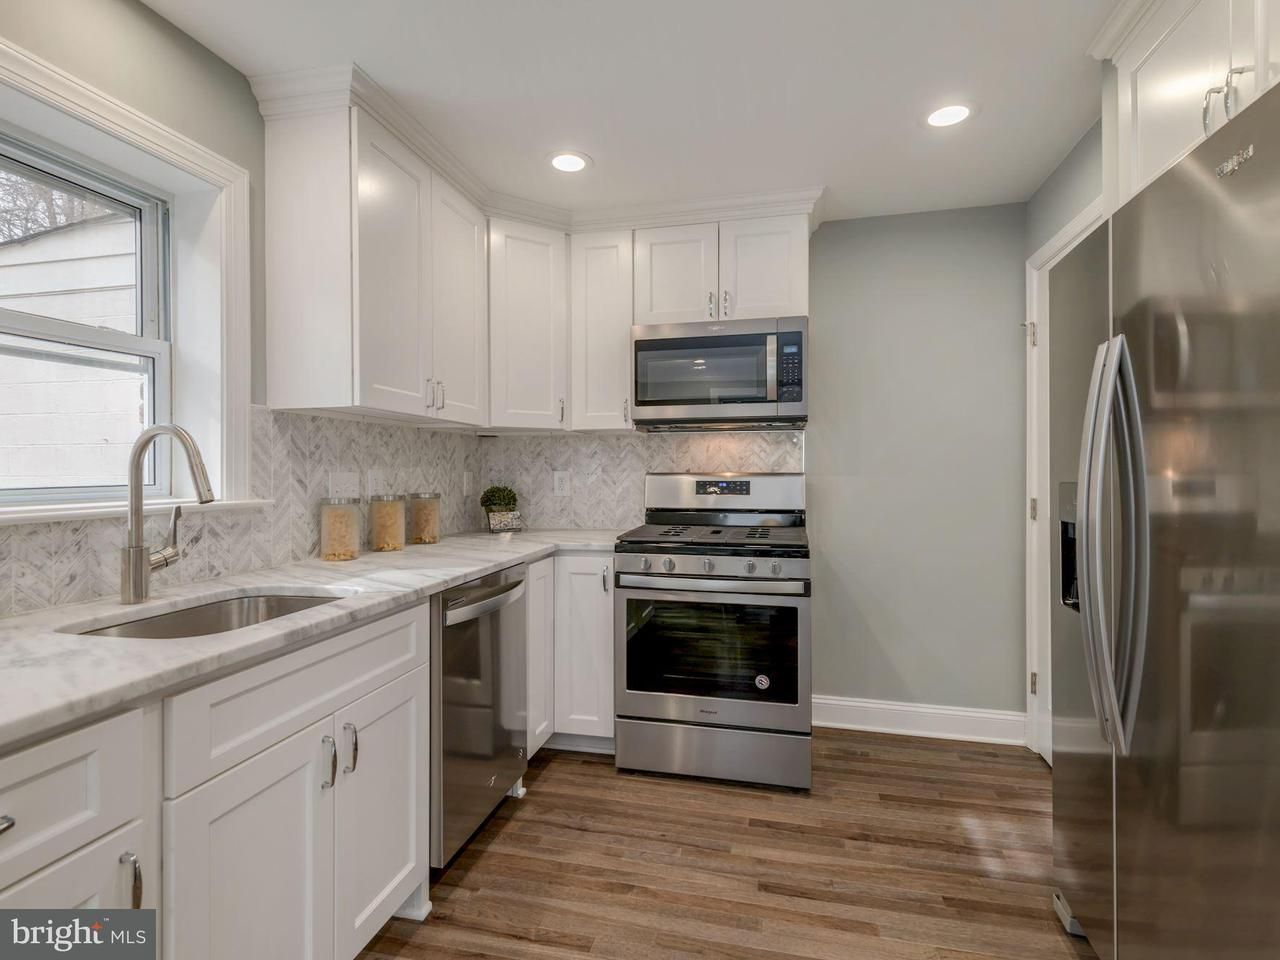 Additional photo for property listing at 2329 RIVERVIEW TER 2329 RIVERVIEW TER Alexandria, Virginia 22303 United States